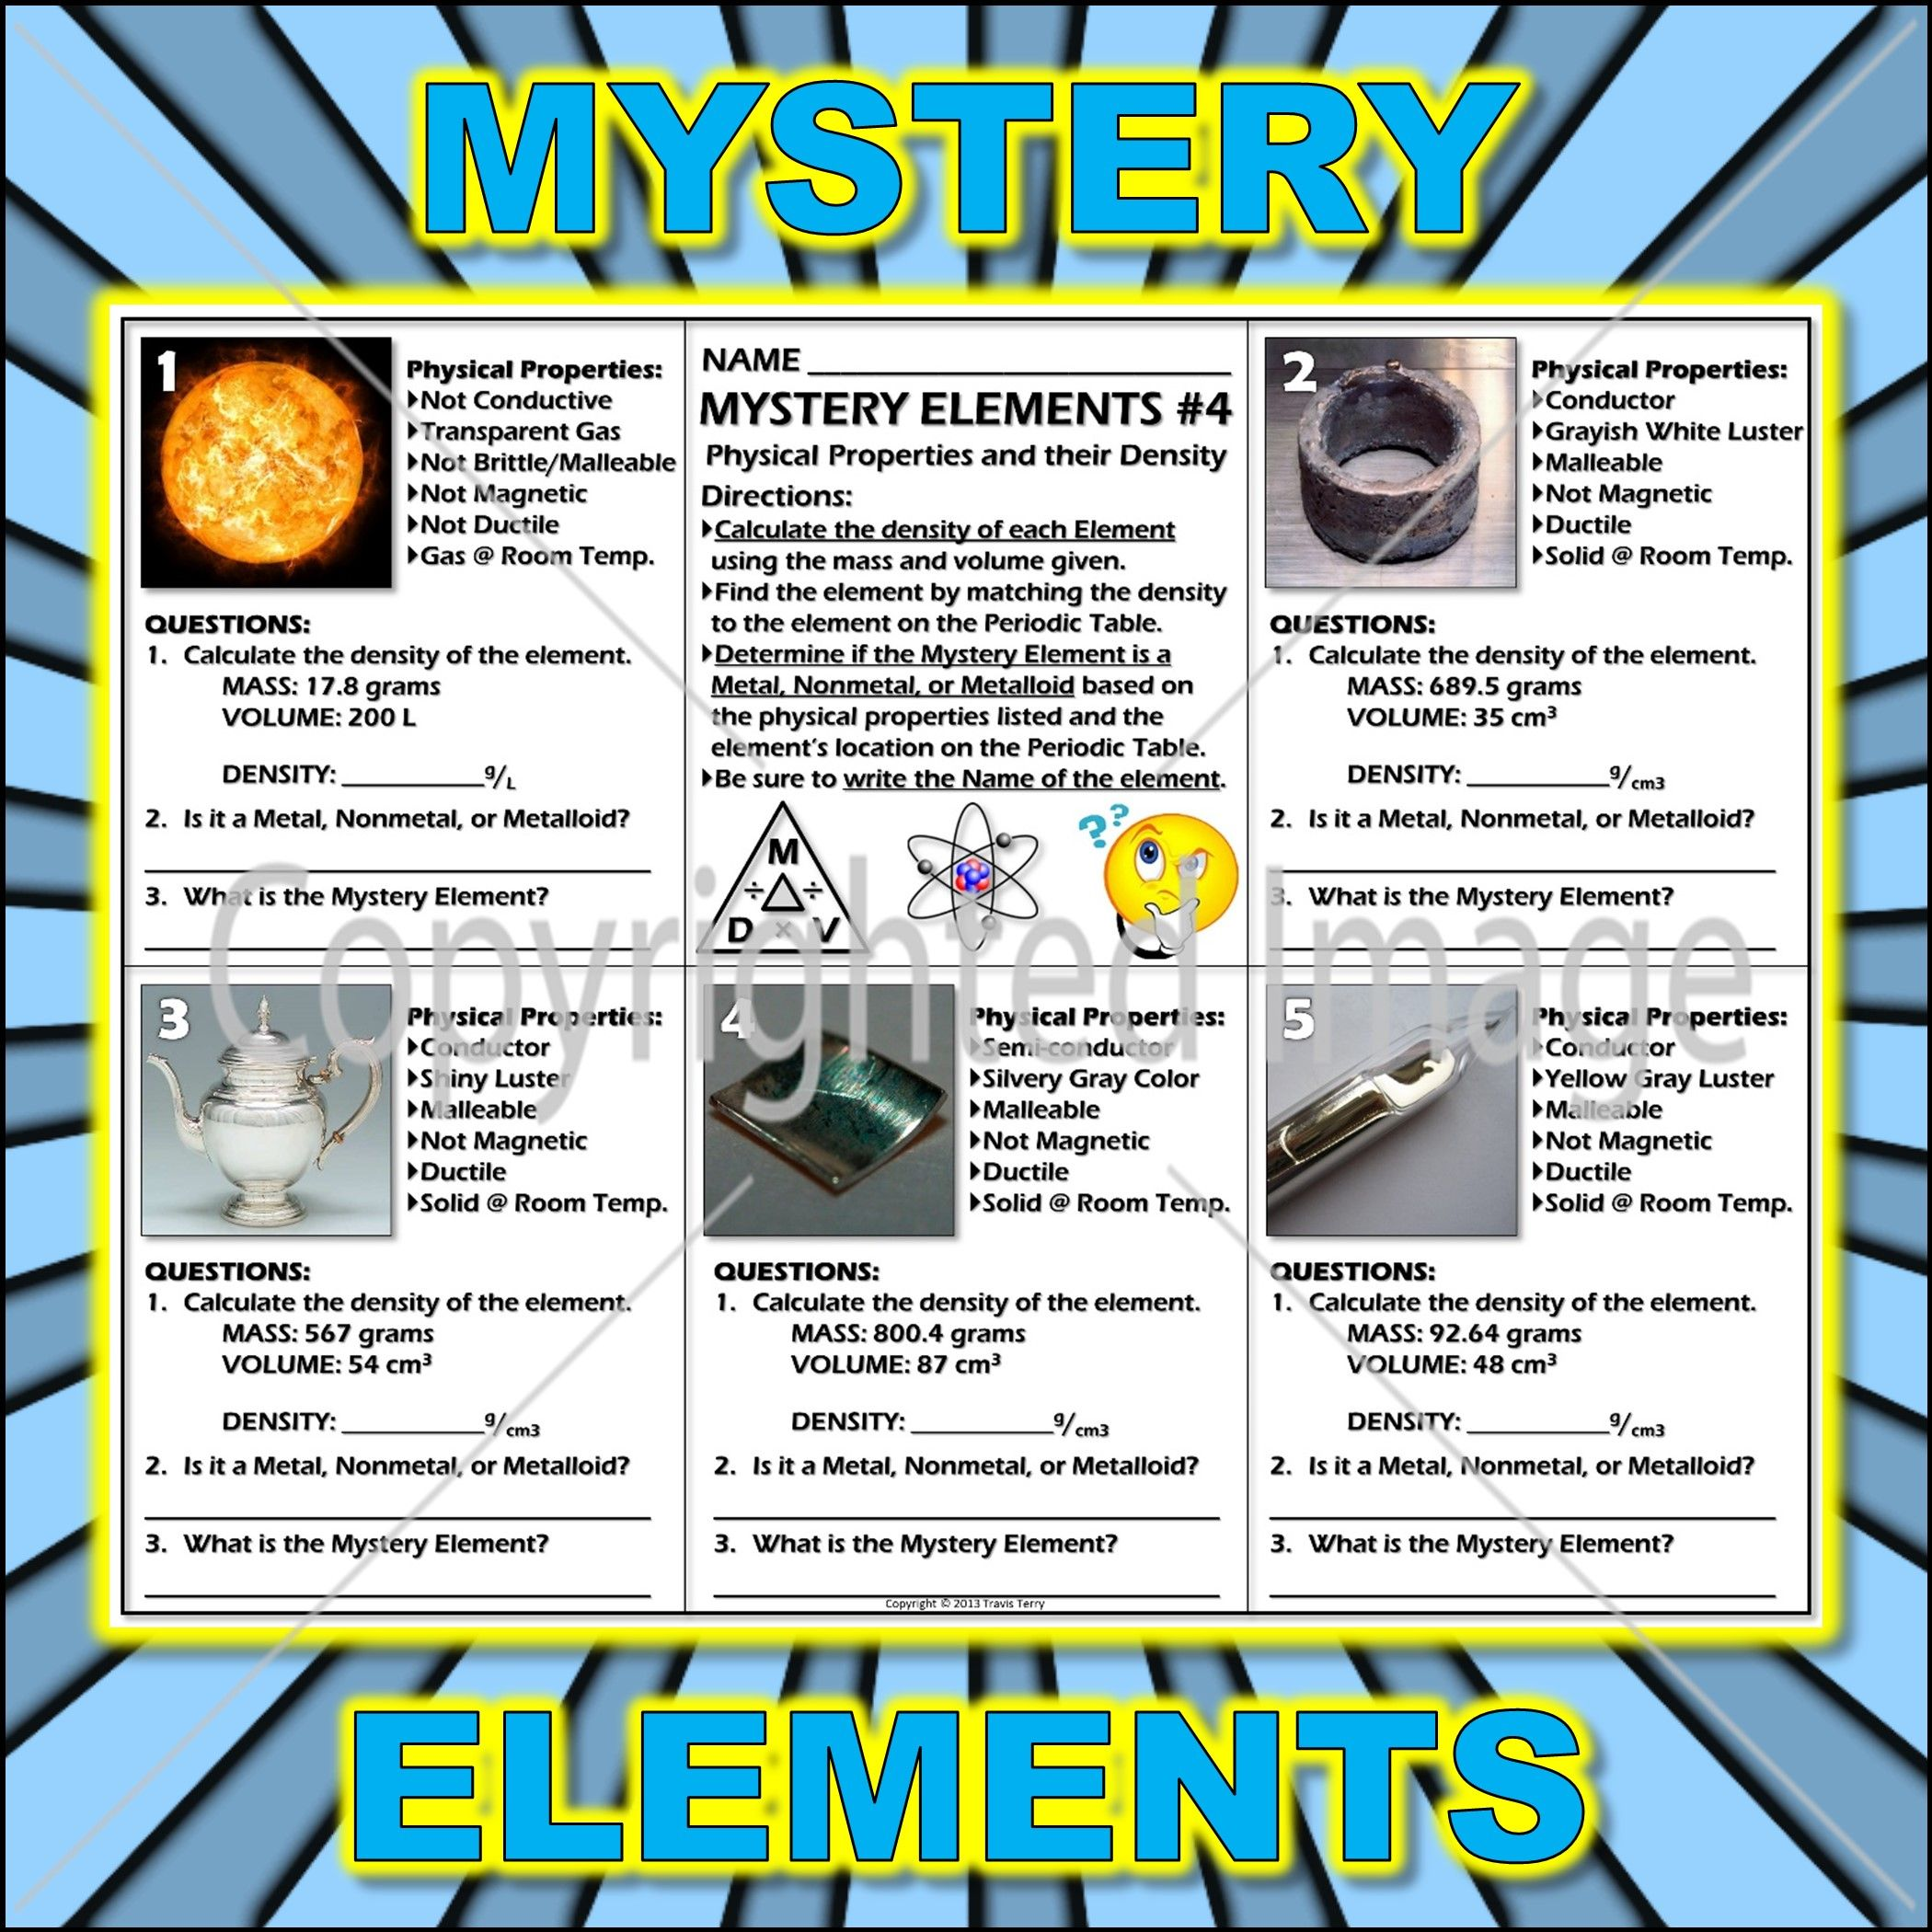 Worksheet mystery elements and their density version 4 periodic a performance indicator testquizworksheet covering physical properties density in gamestrikefo Images